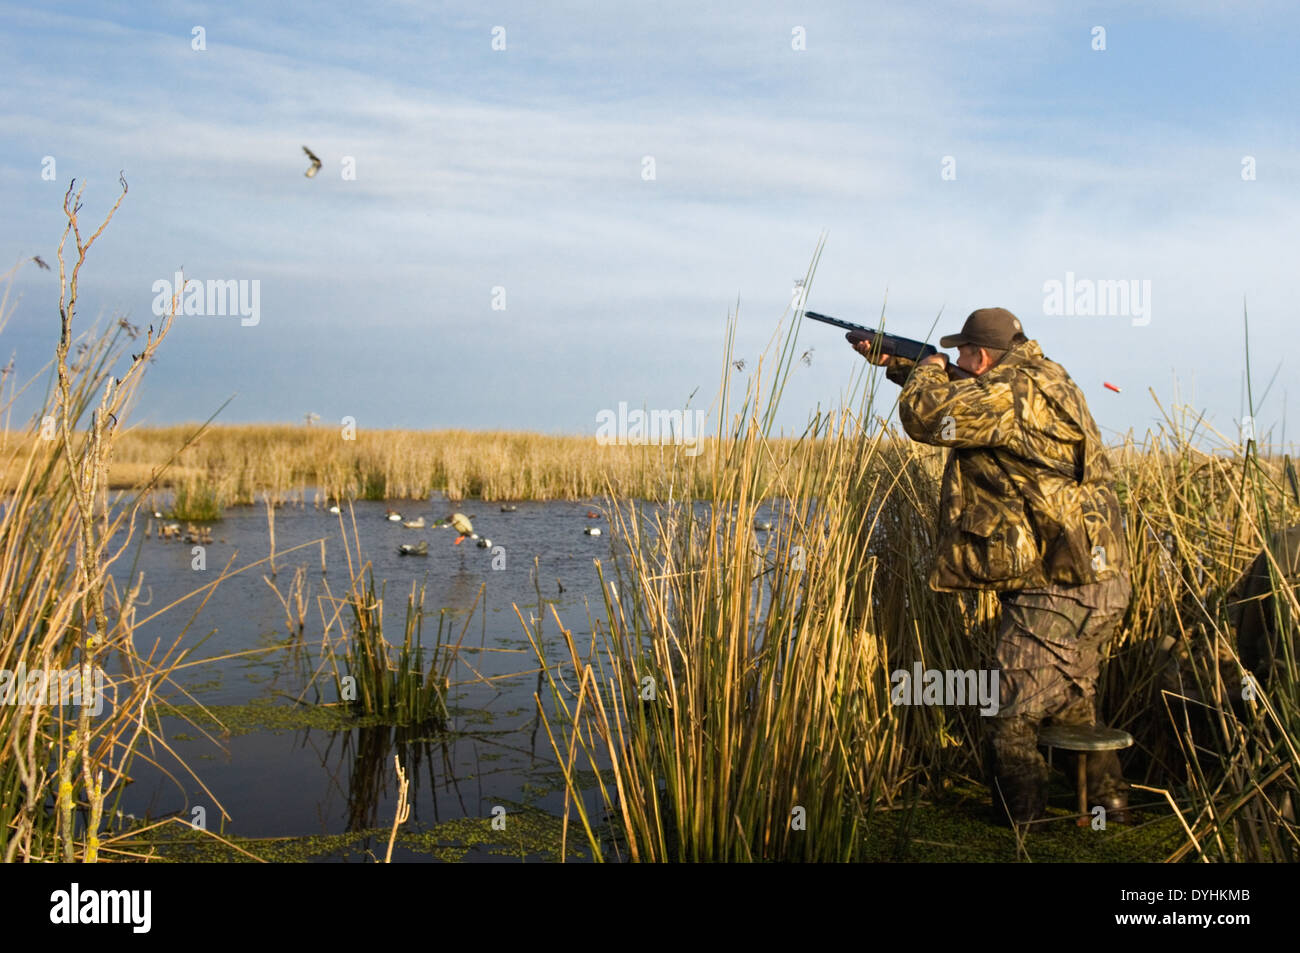 Duck Hunter Shooting from Blind at Jacana Lodge in the Rio Negro Province of Argentina - Stock Image